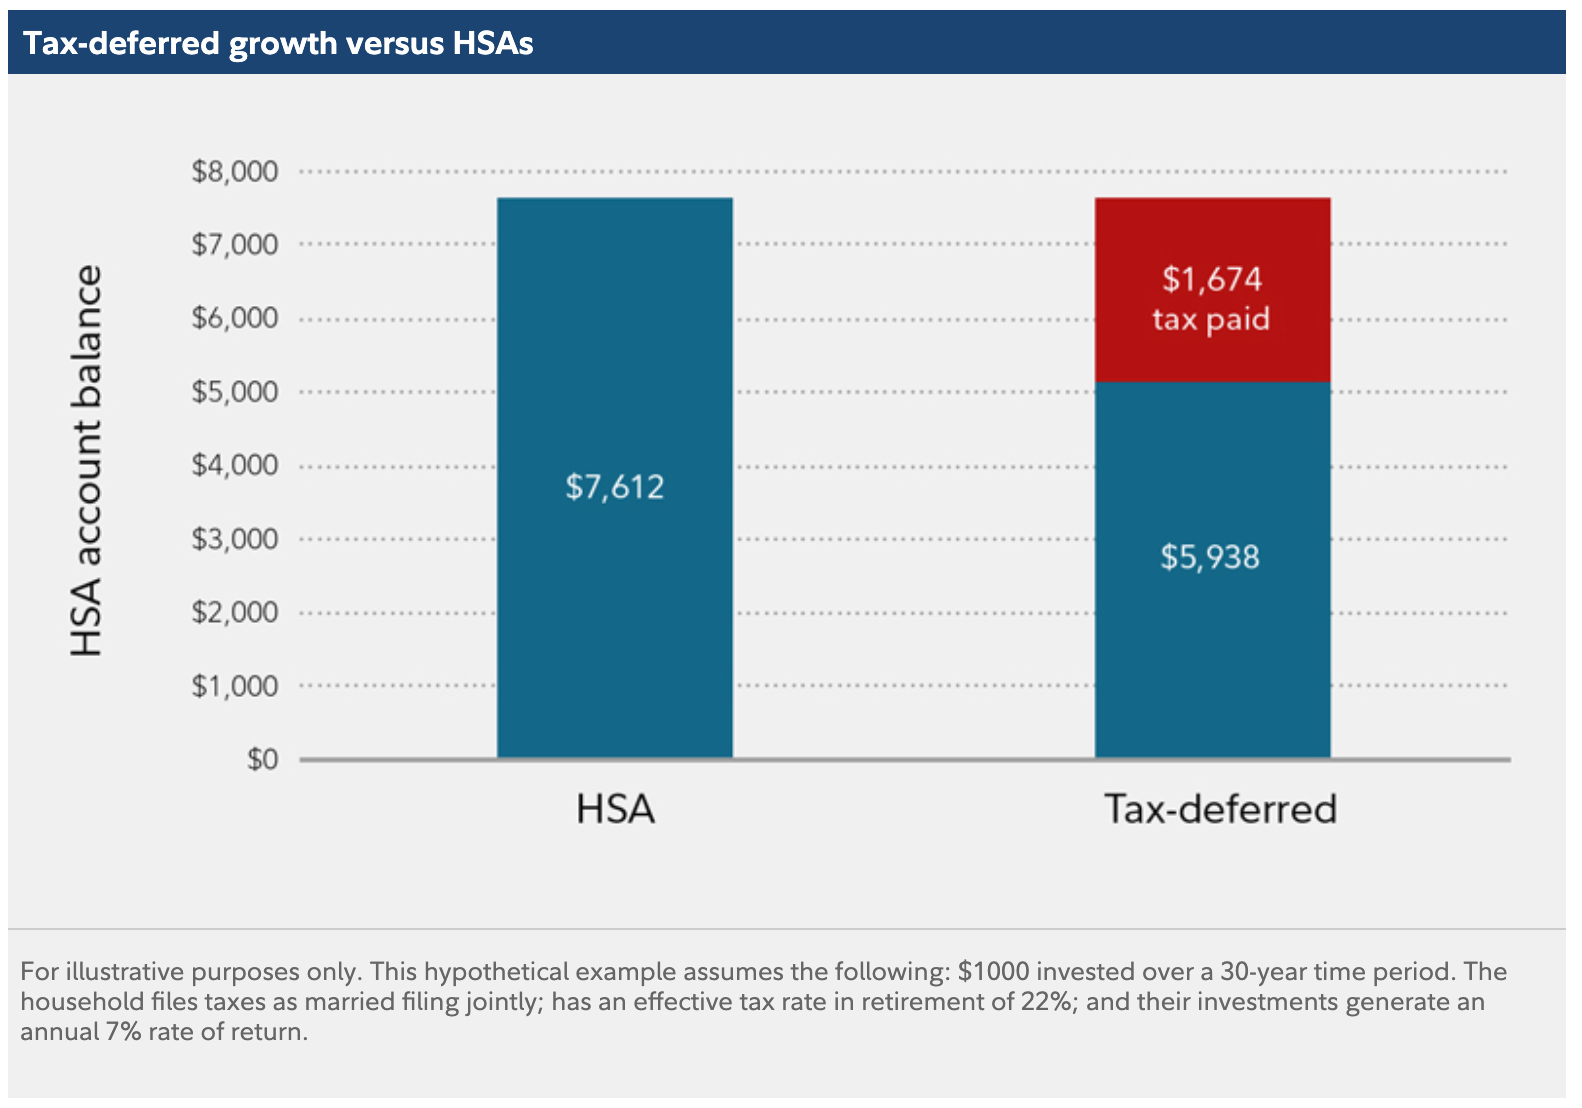 Fidelity's tax-deferred growth versus HSAs chart